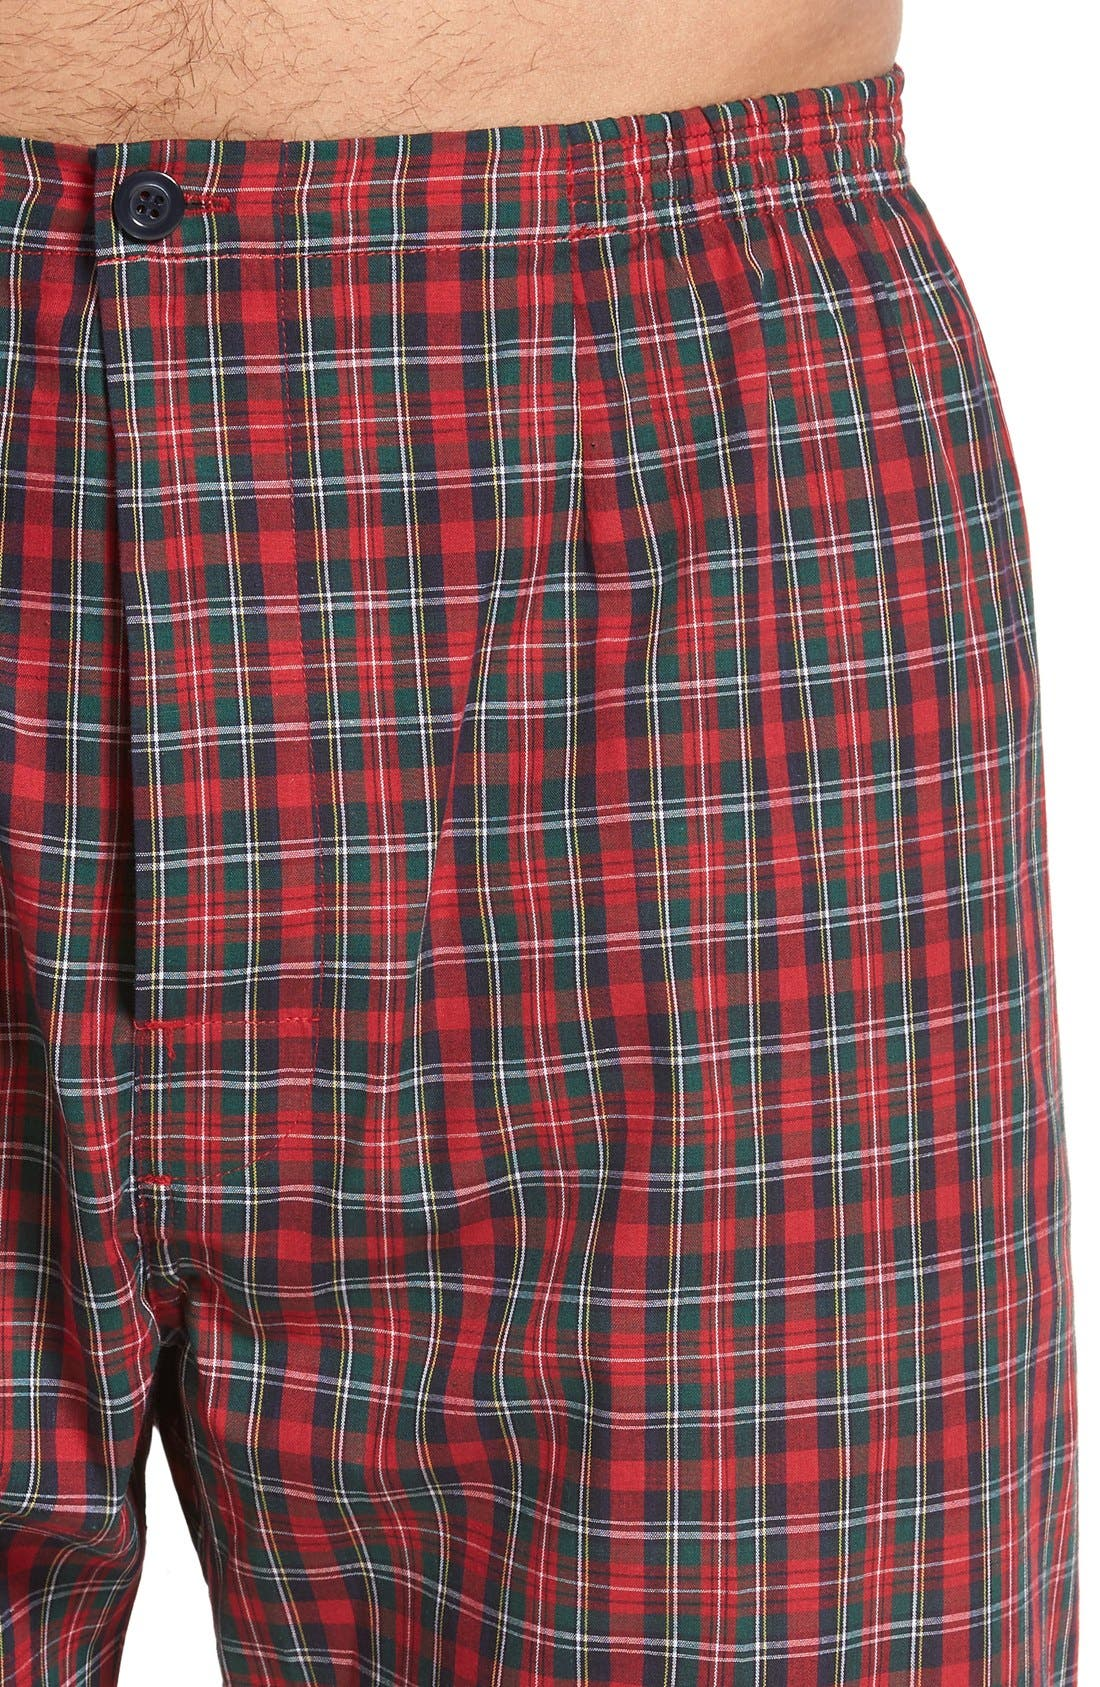 'CVC' Cotton Blend Pajamas,                             Alternate thumbnail 4, color,                             HOLIDAY RED